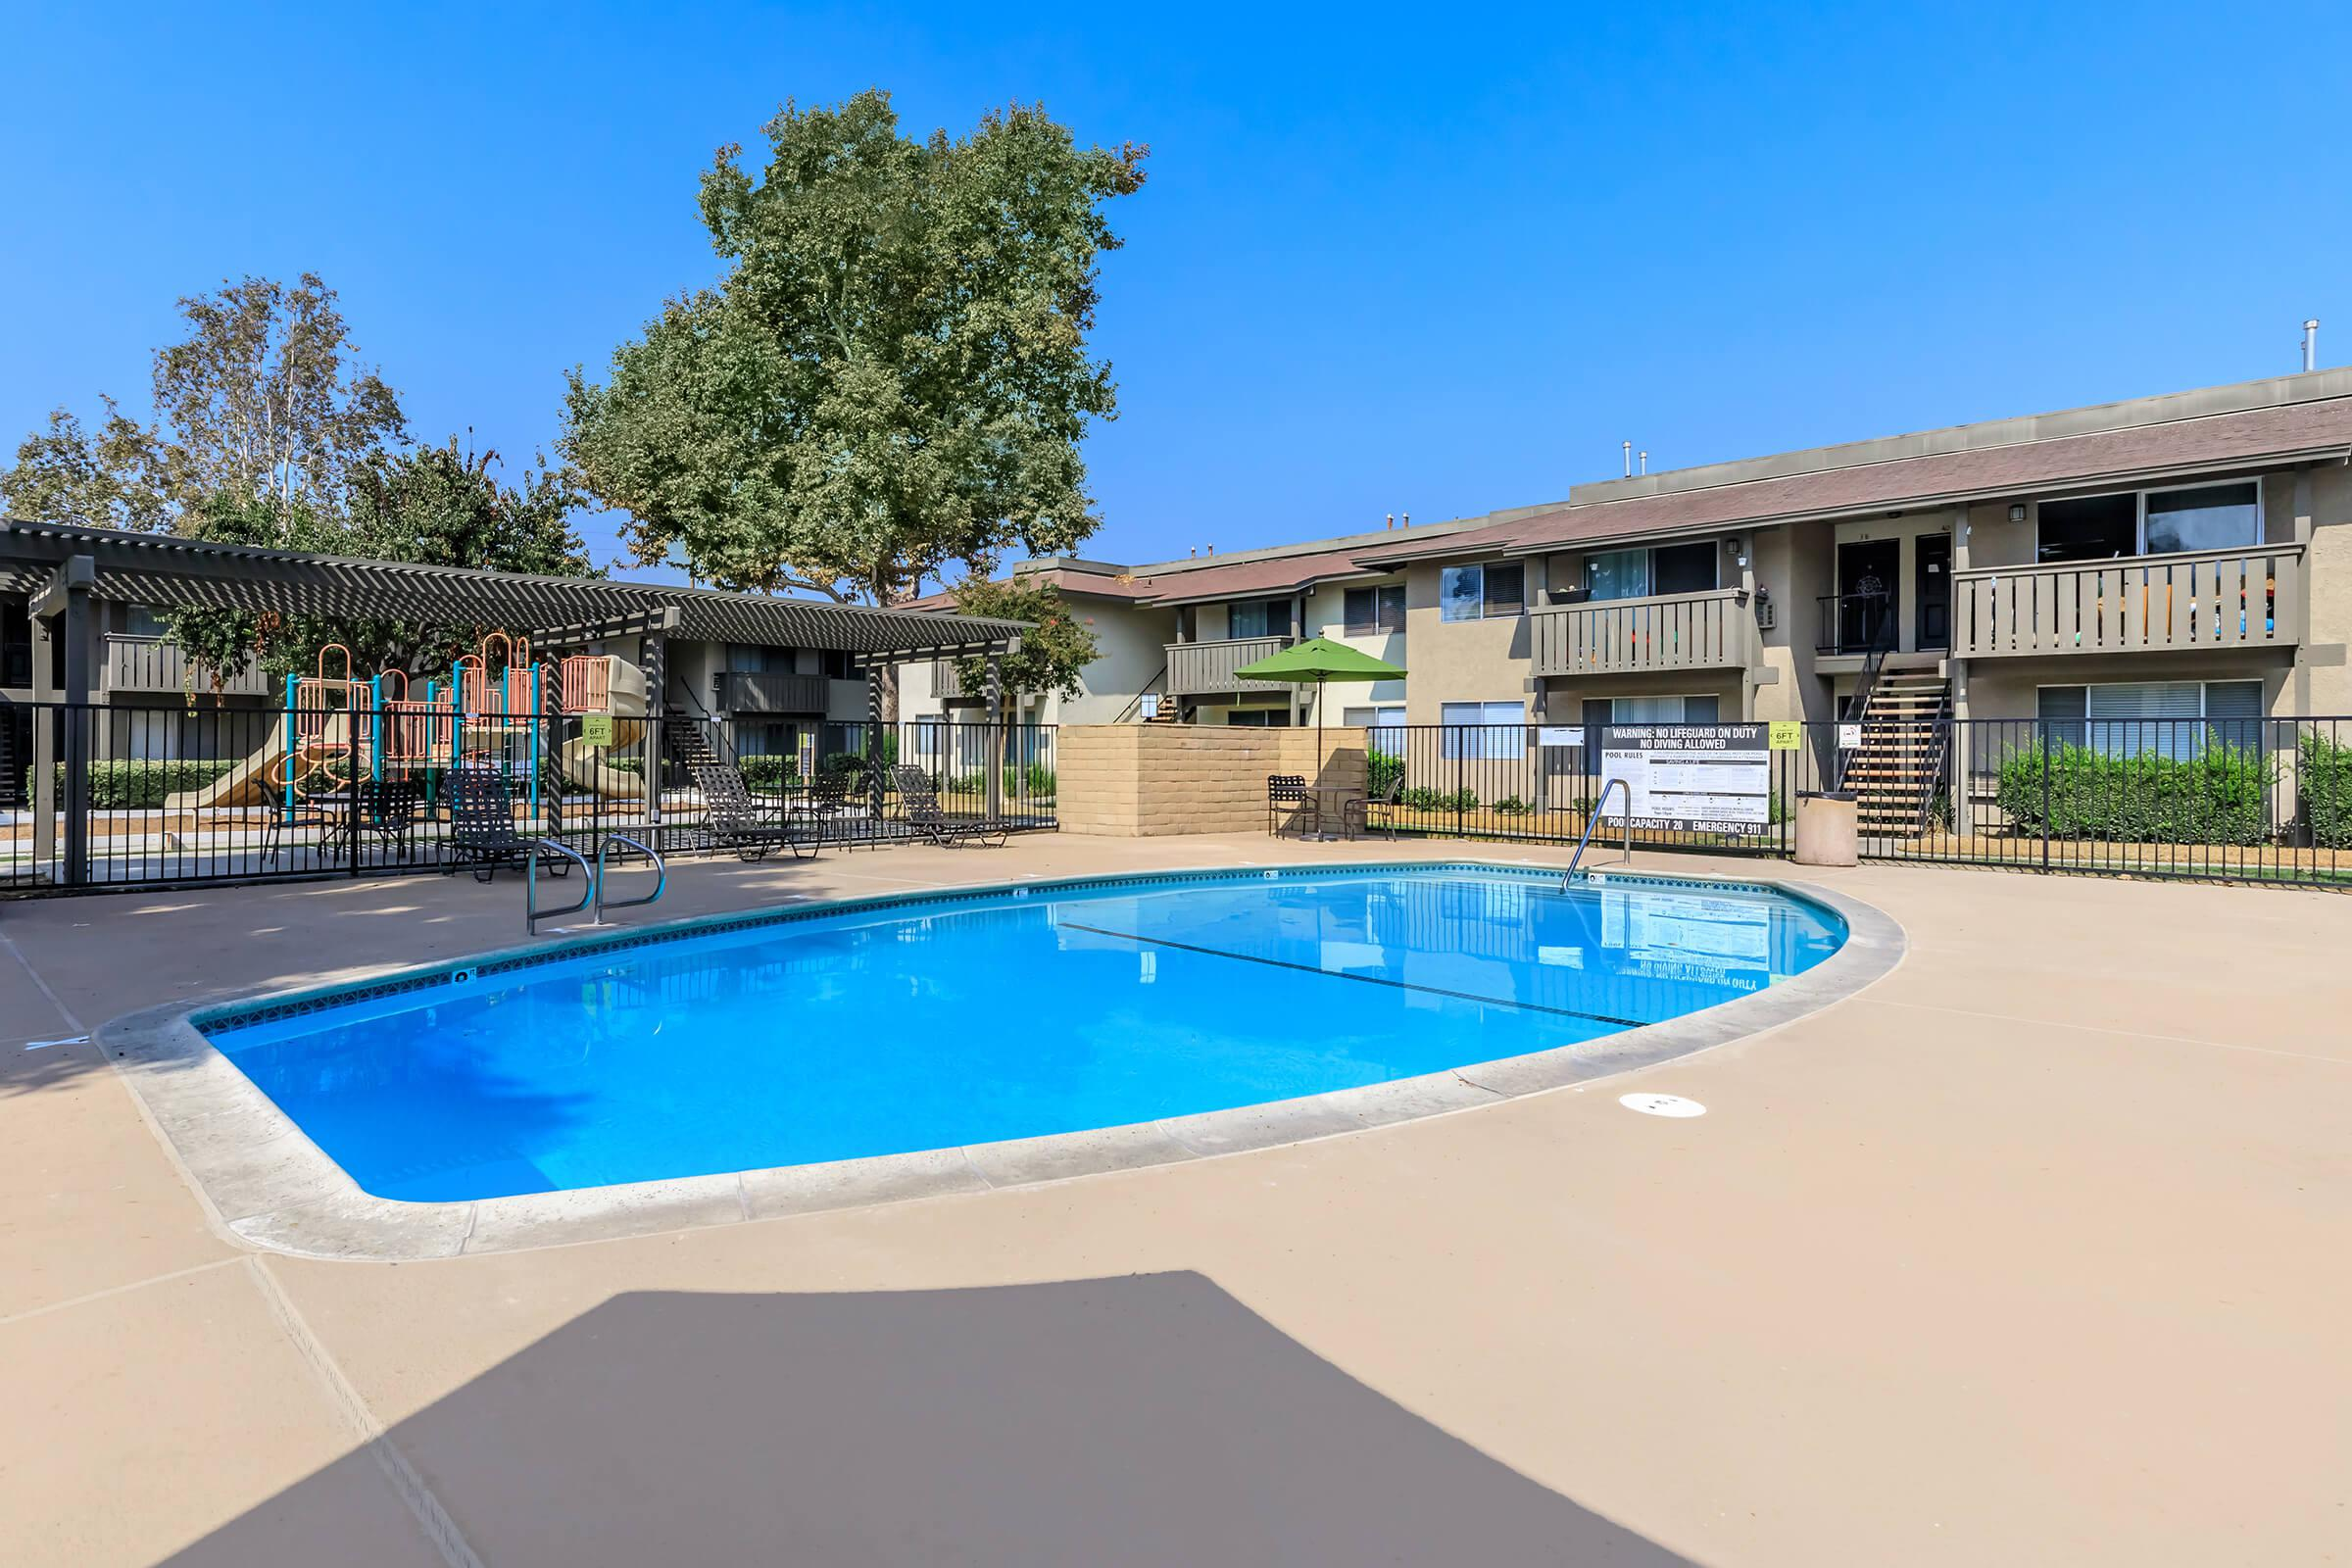 Meadowood Place Apartment Homes community pool with pergola